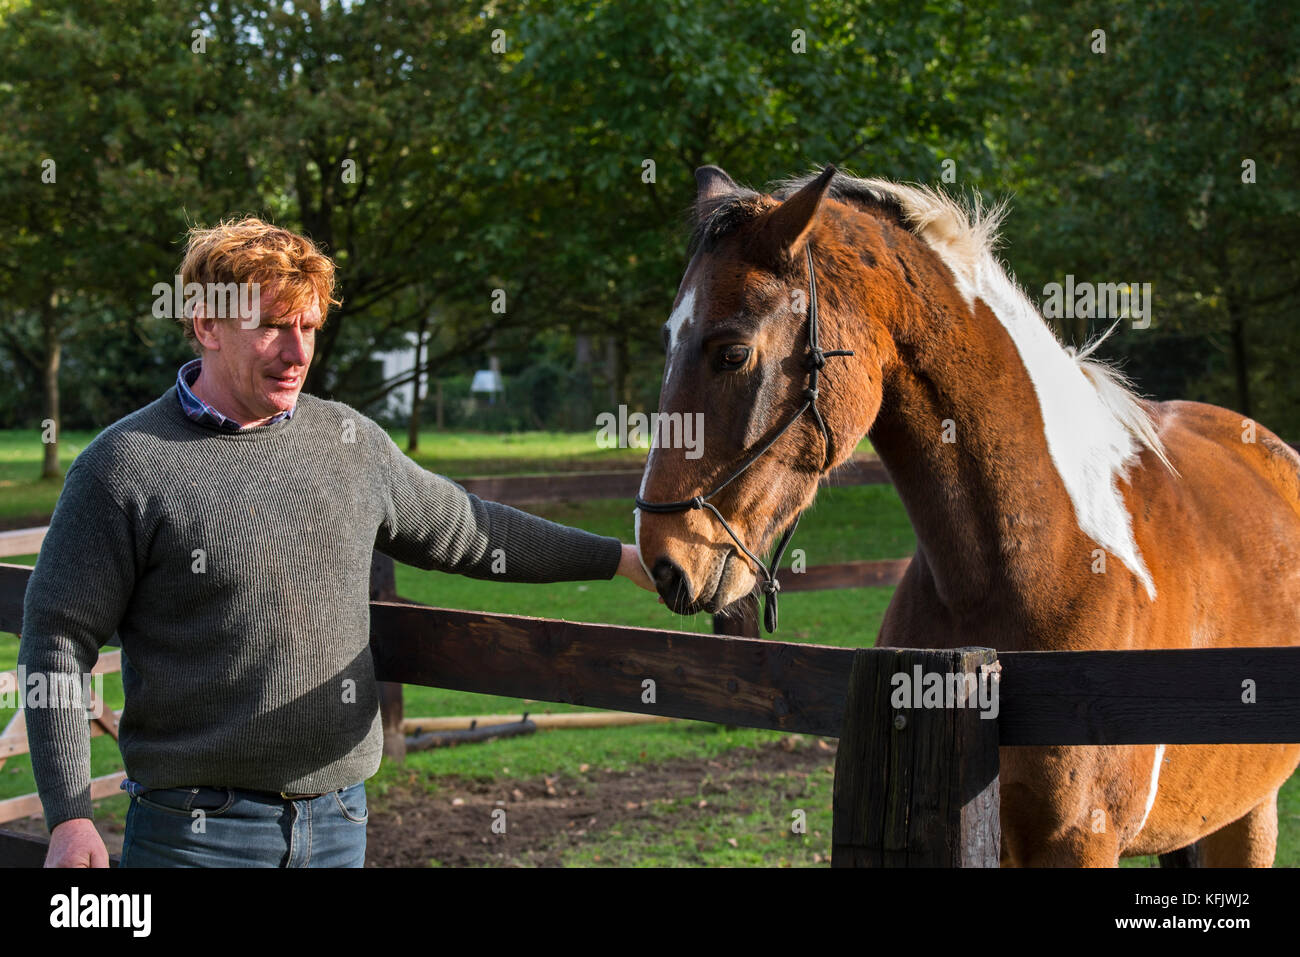 Man with Pinto horse / Quarter Horse stallion outside in field within wooden enclosure - Stock Image